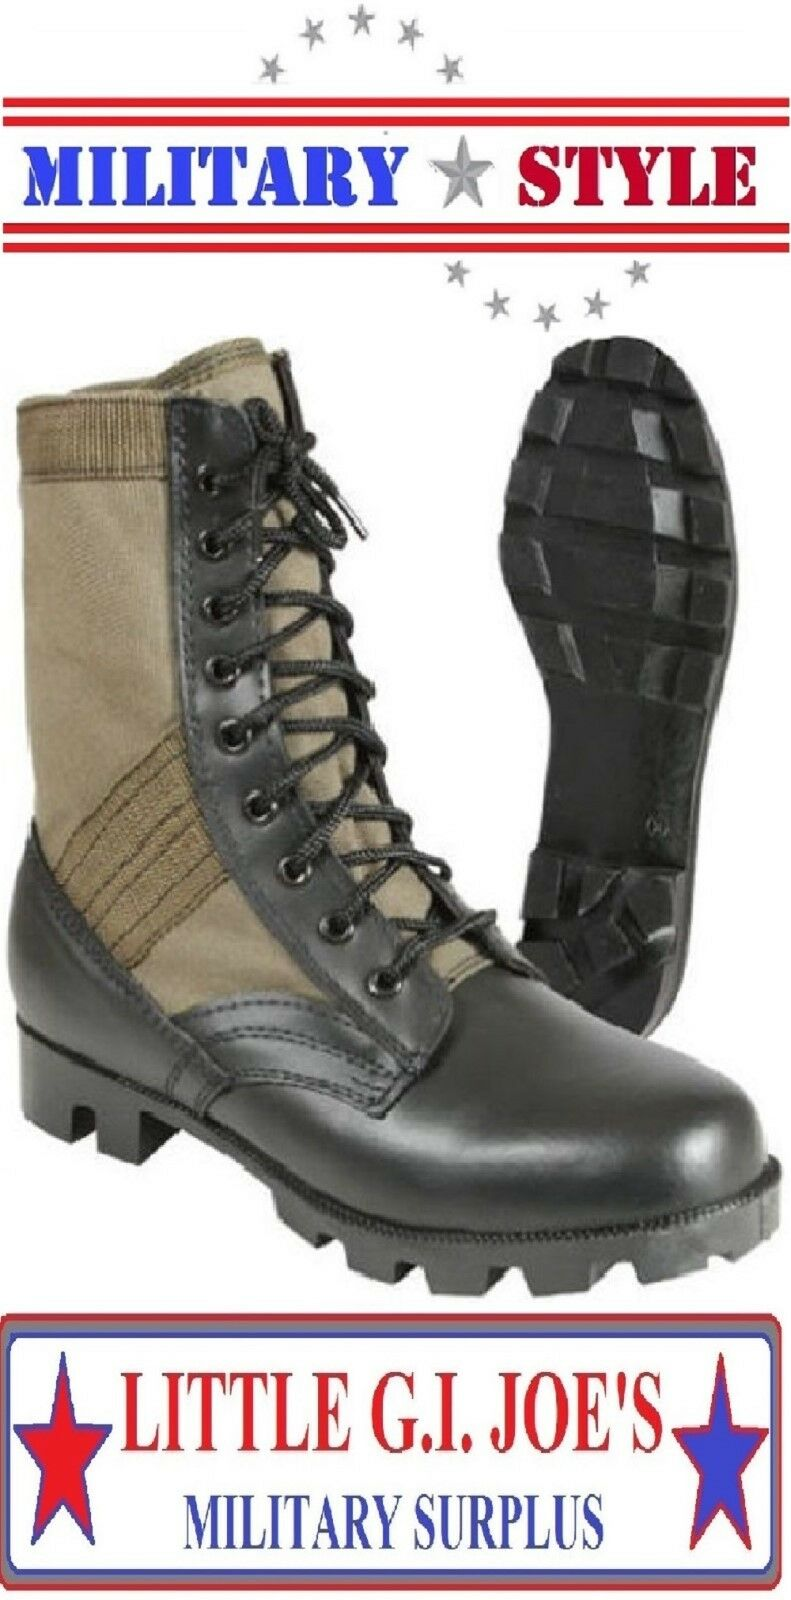 Jungle Boots Olive Drab Green Military Style Vietnam Boots 5080 redhco